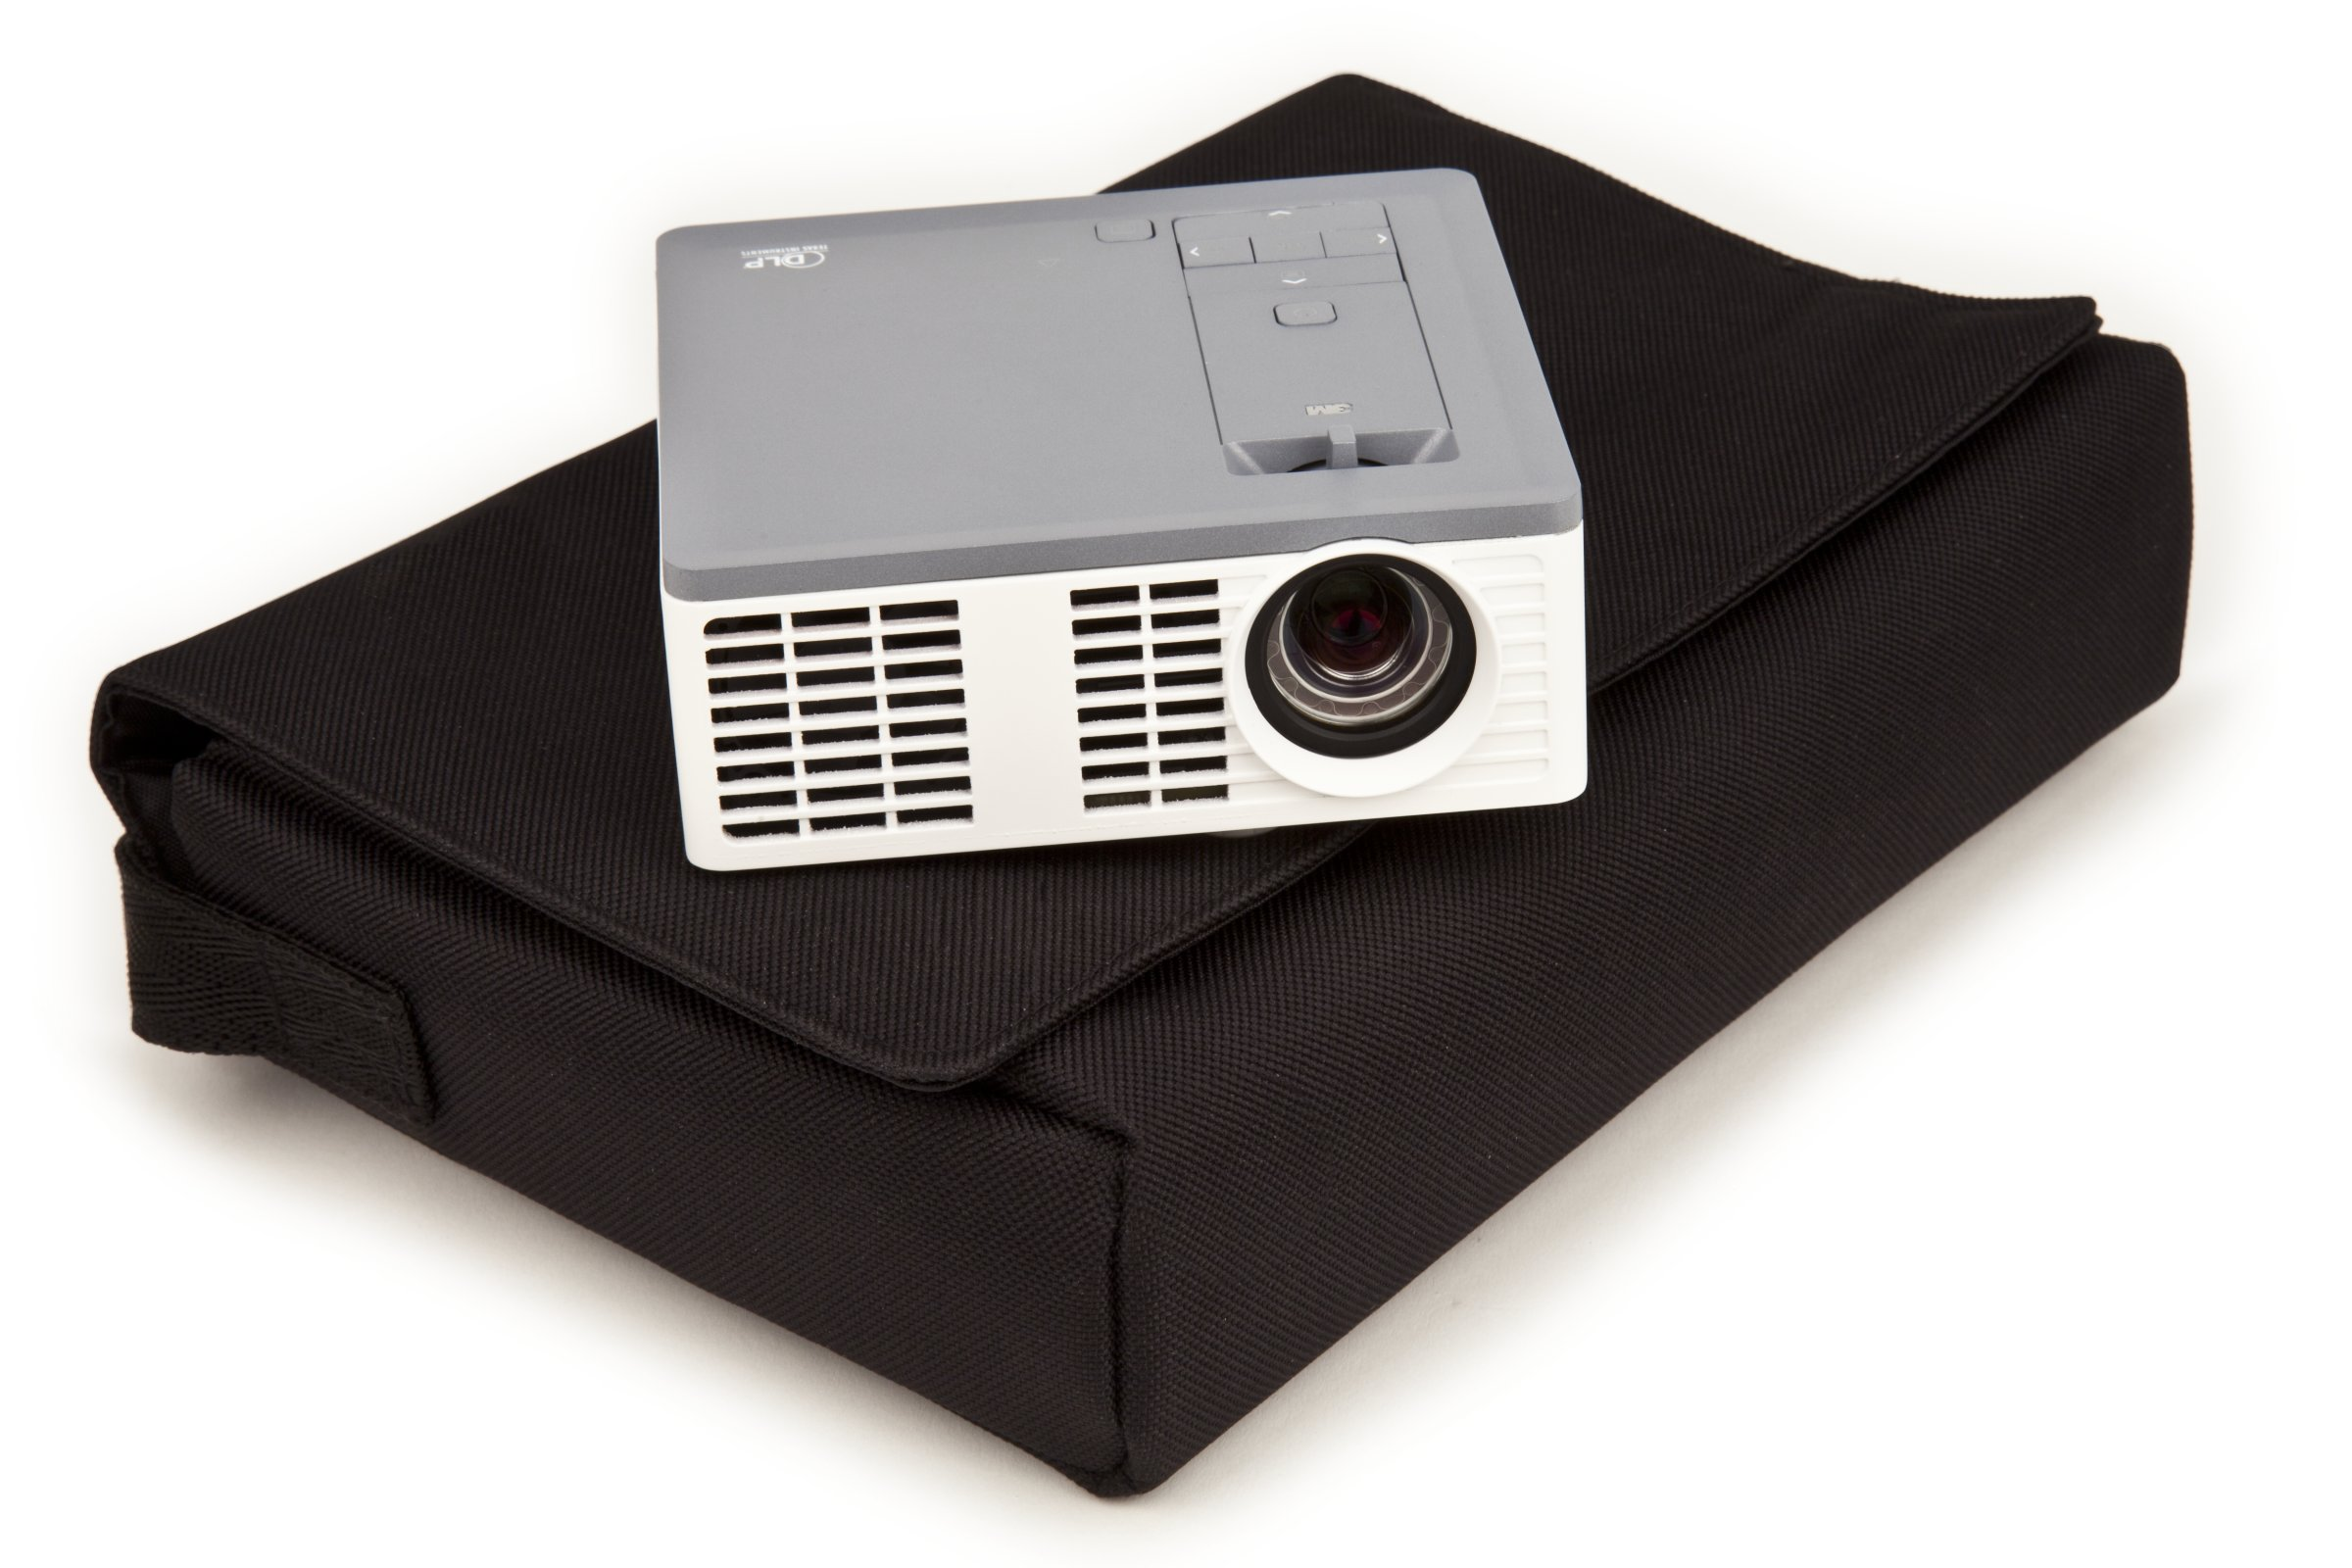 V0303mis 3m mobile projector mp410 on case 3m uk for How to make mobile projector